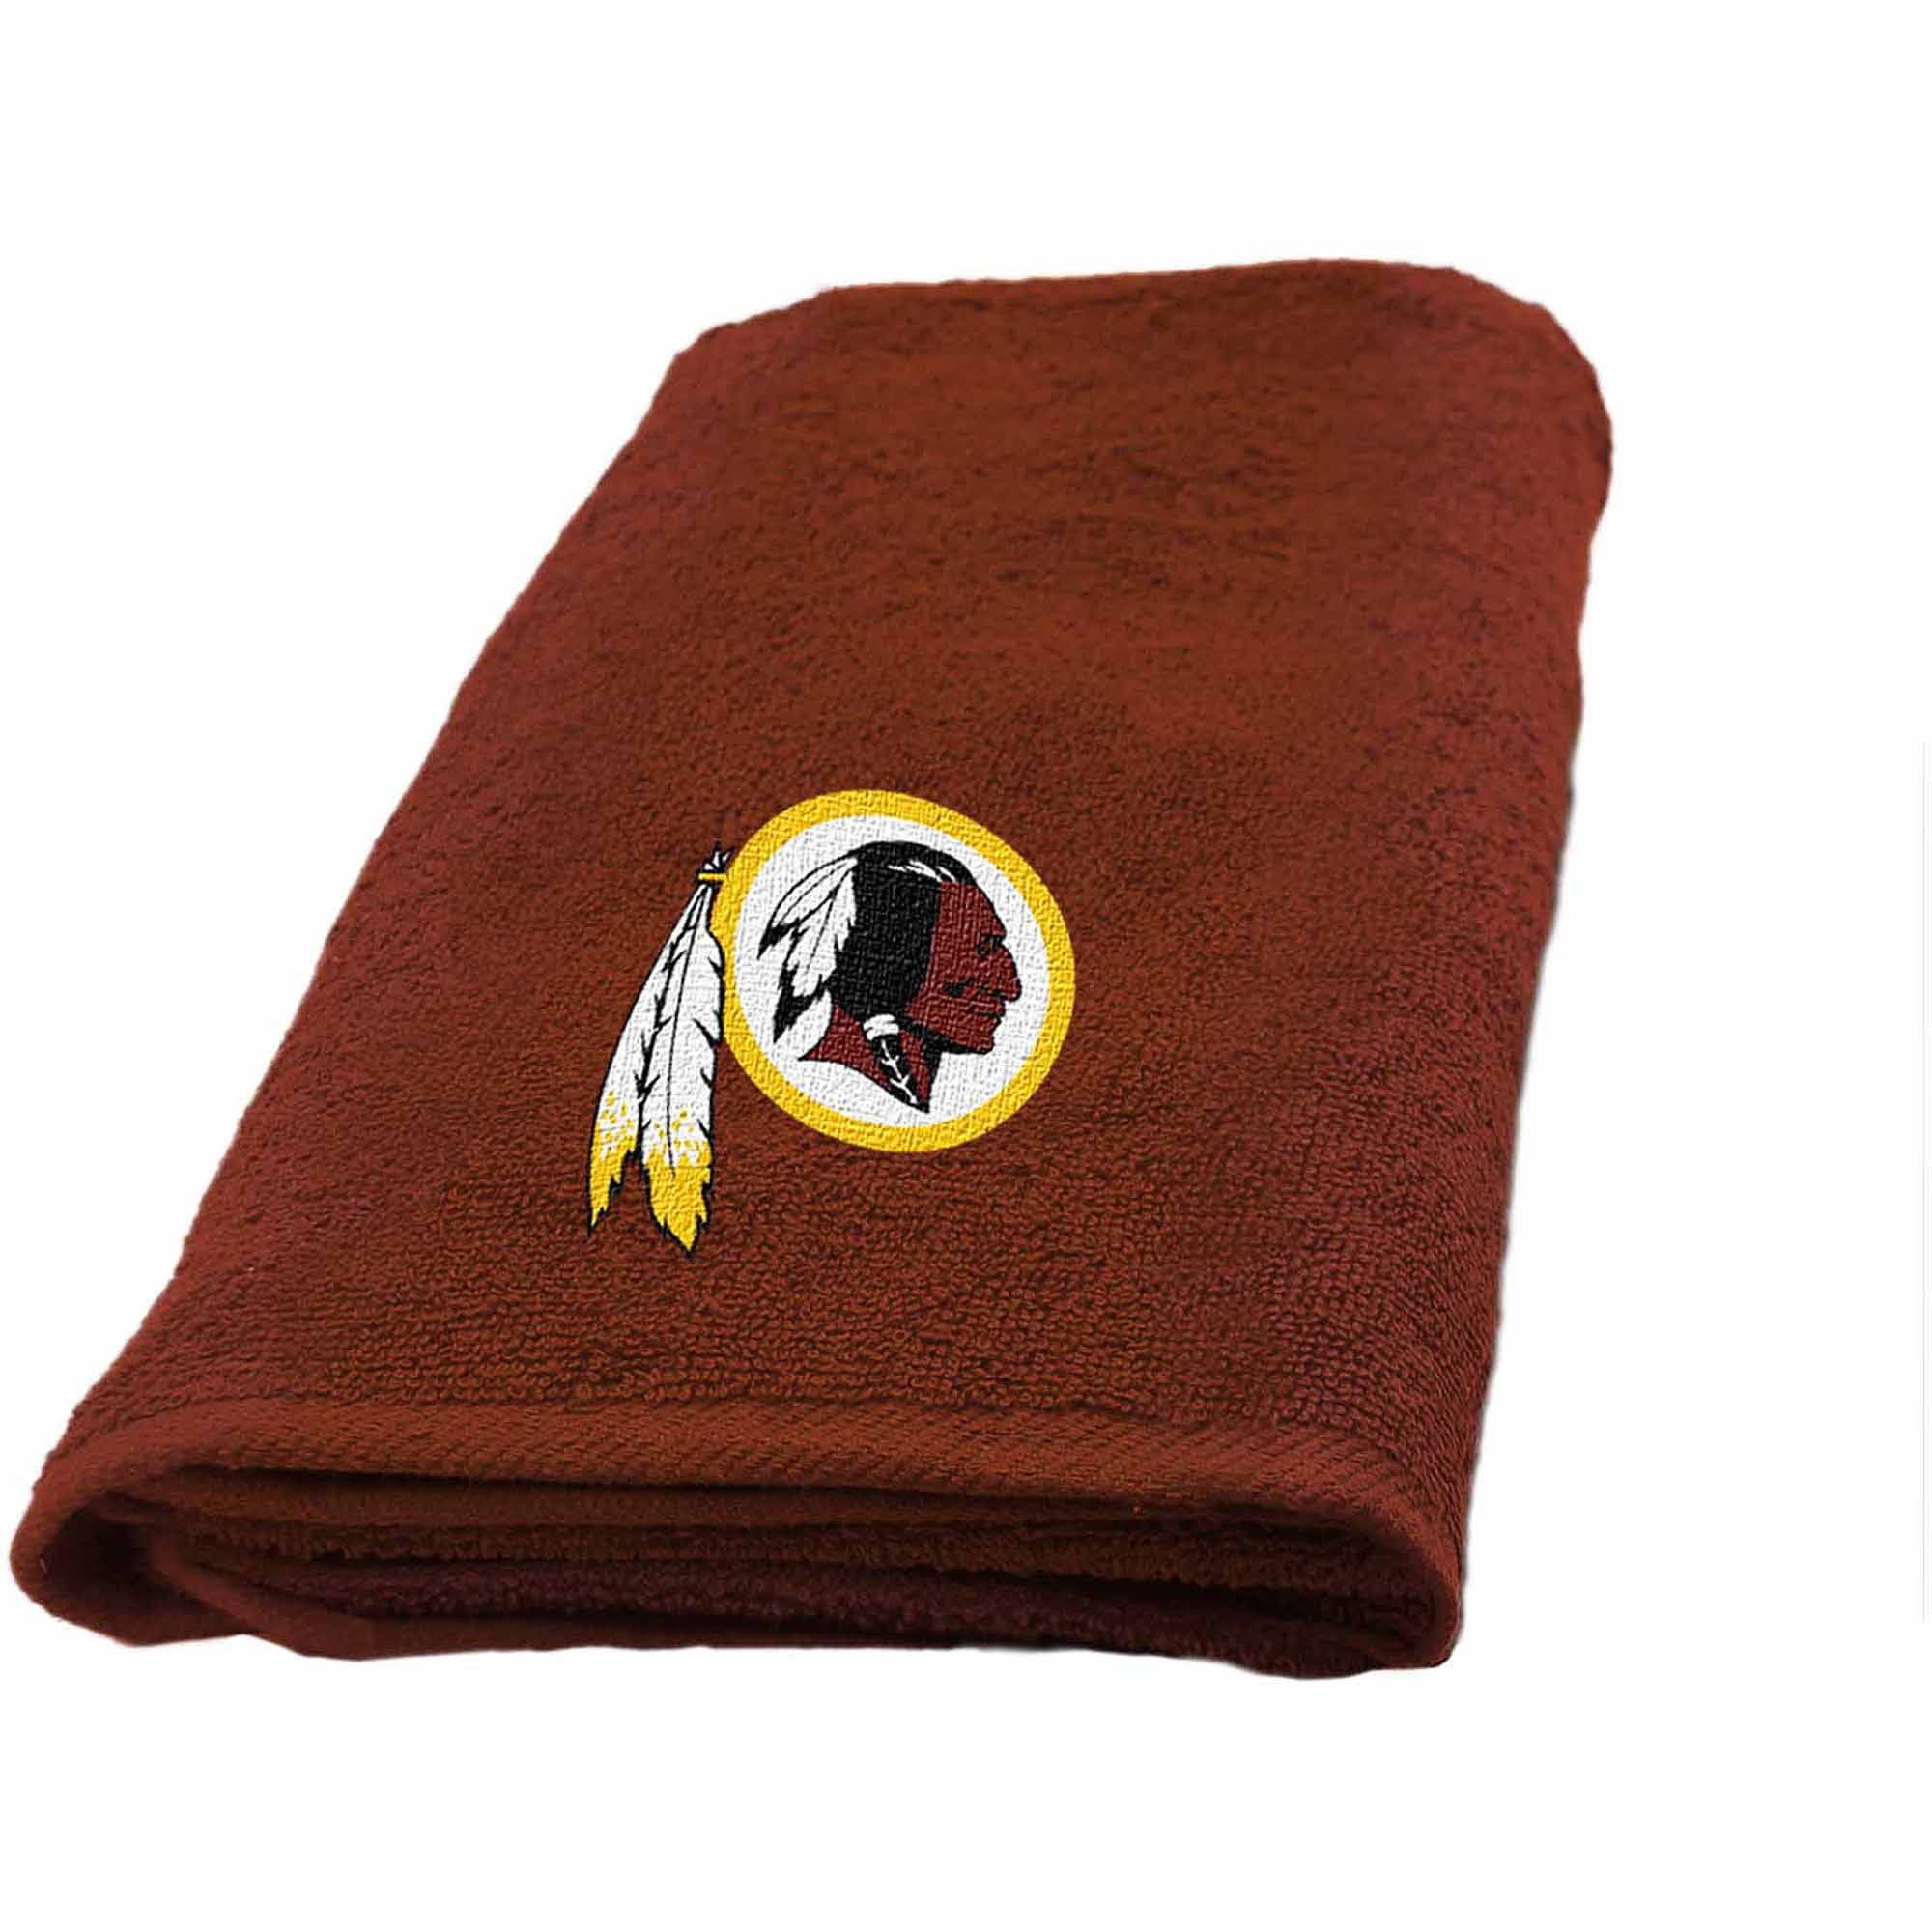 NFL Washington Redskins Hand Towel